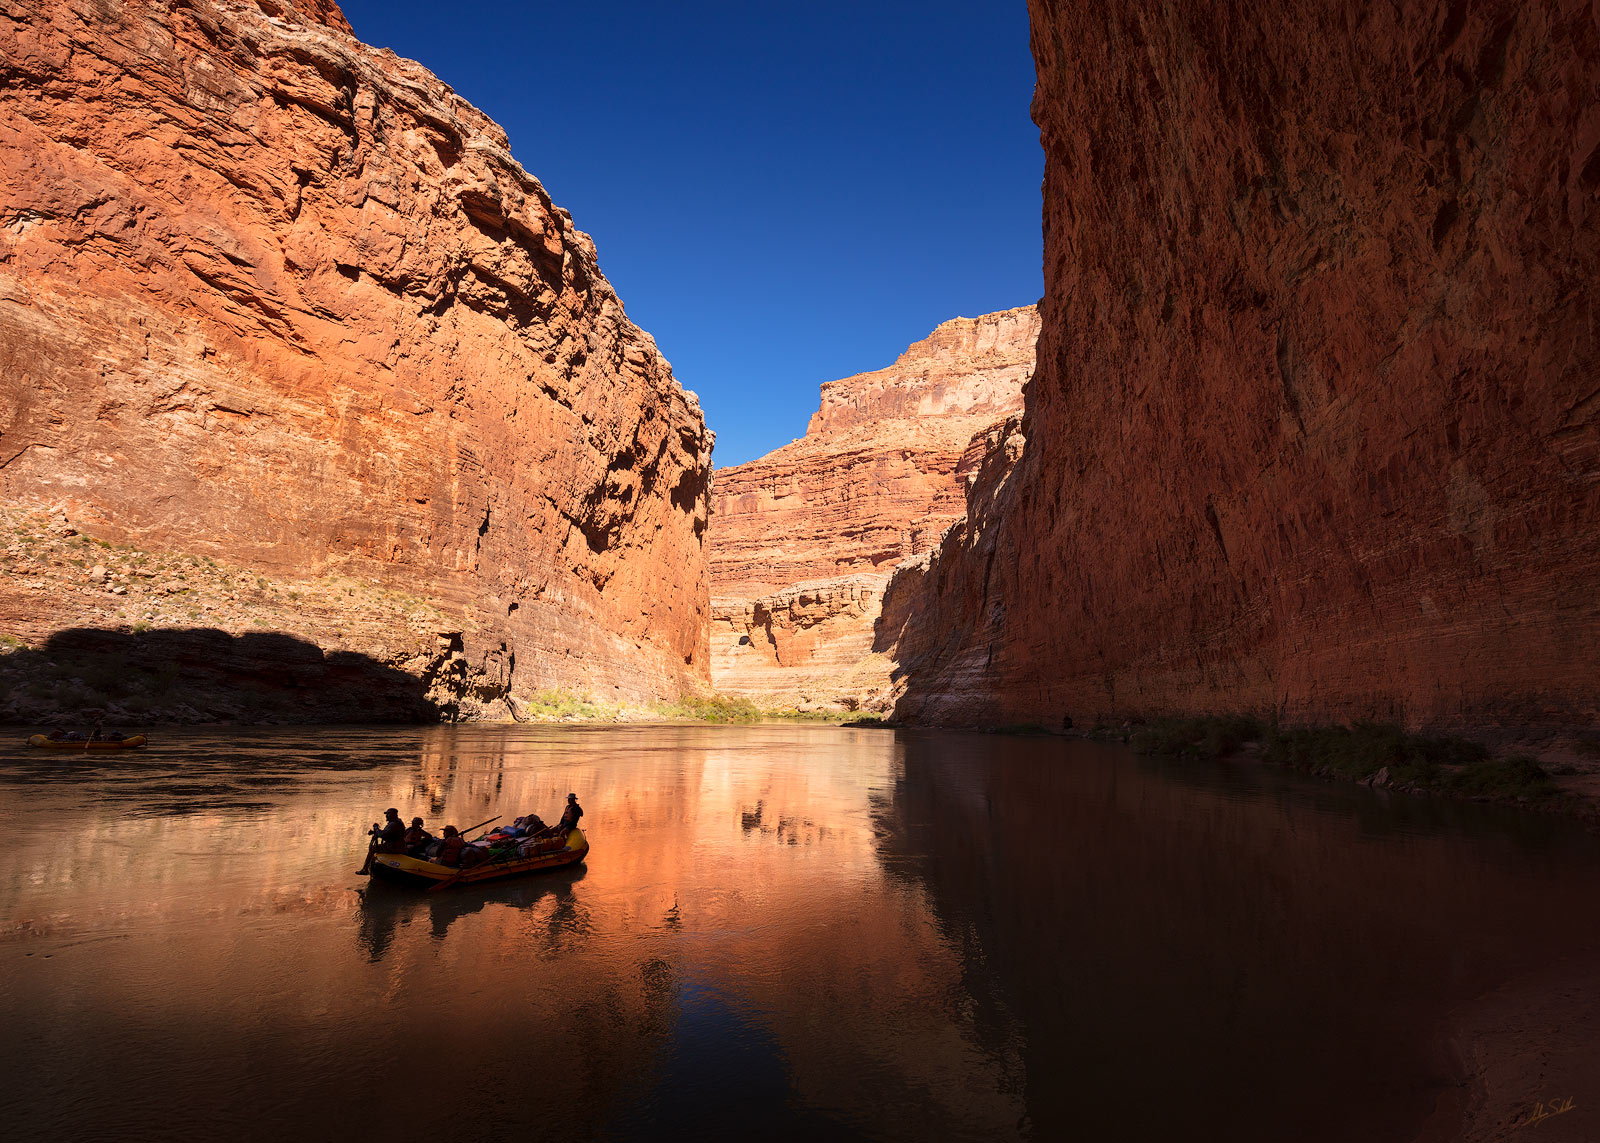 A peaceful moment floating the Colorado River in Marble Canyon. Grand Canyon National Park in Arizona. Photo © Adam Schallau...